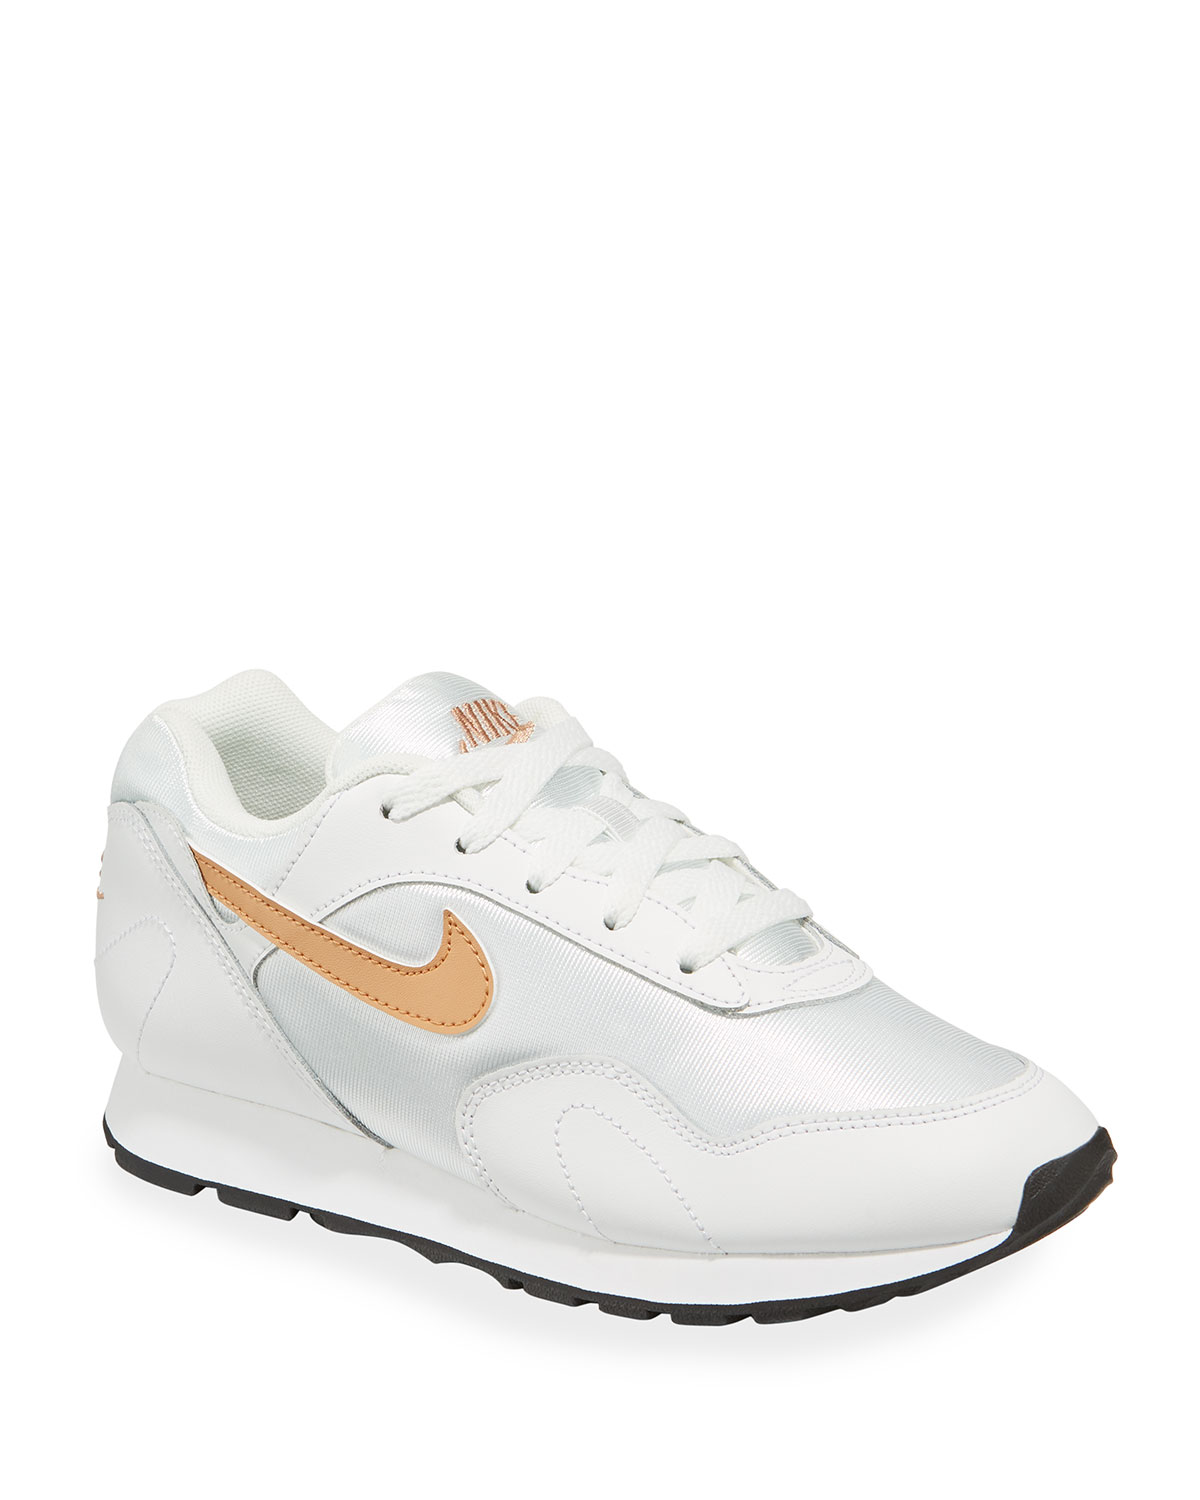 5497ddc27c148 Nike Outburst Mixed Lace-Up Sneakers